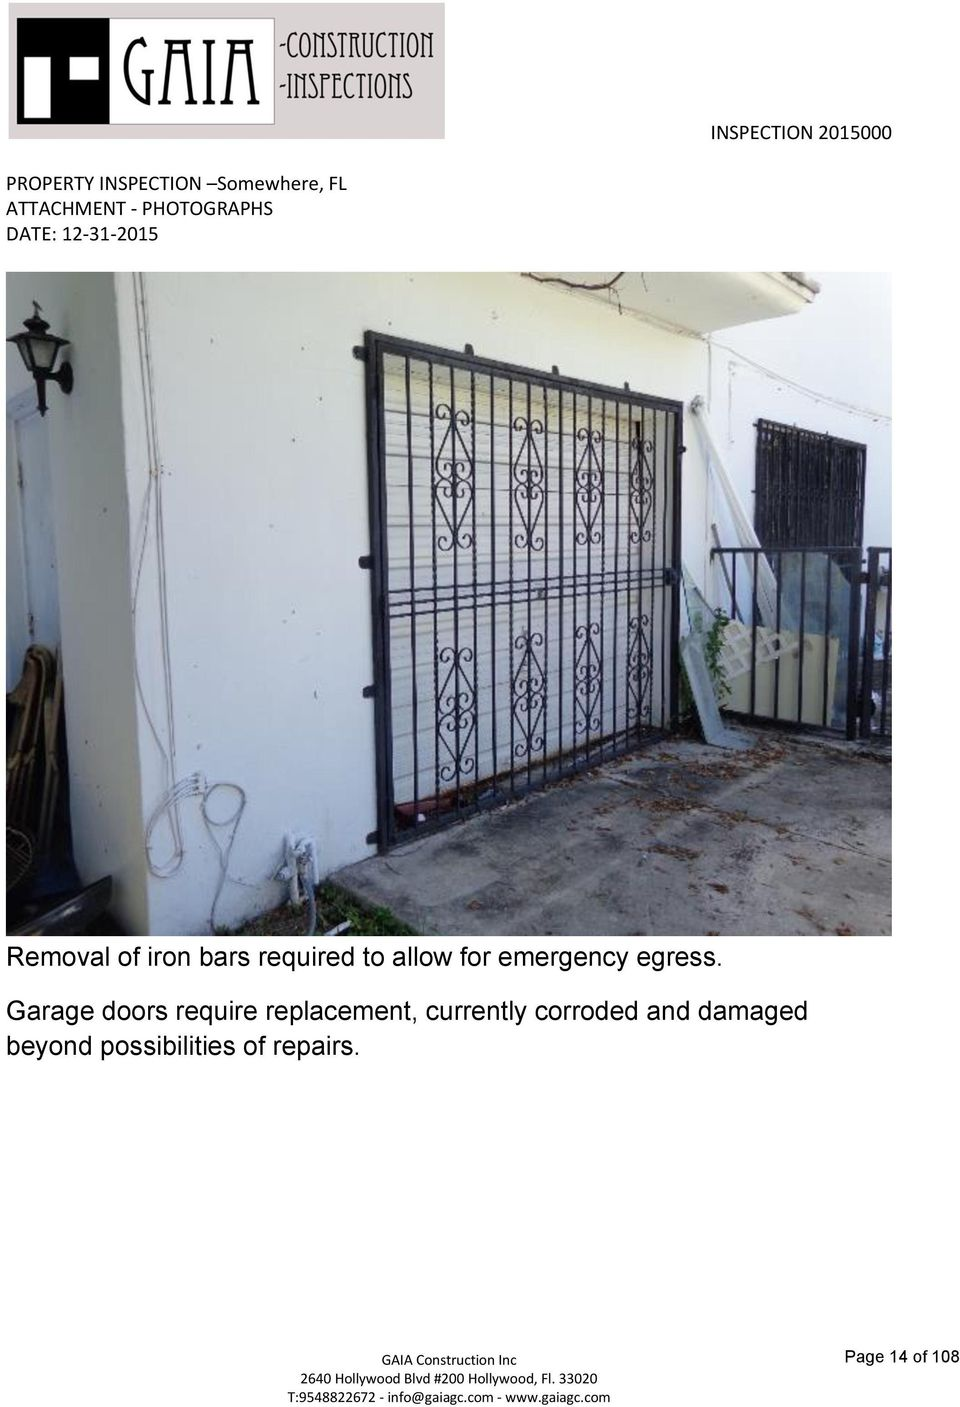 Garage doors require replacement, currently